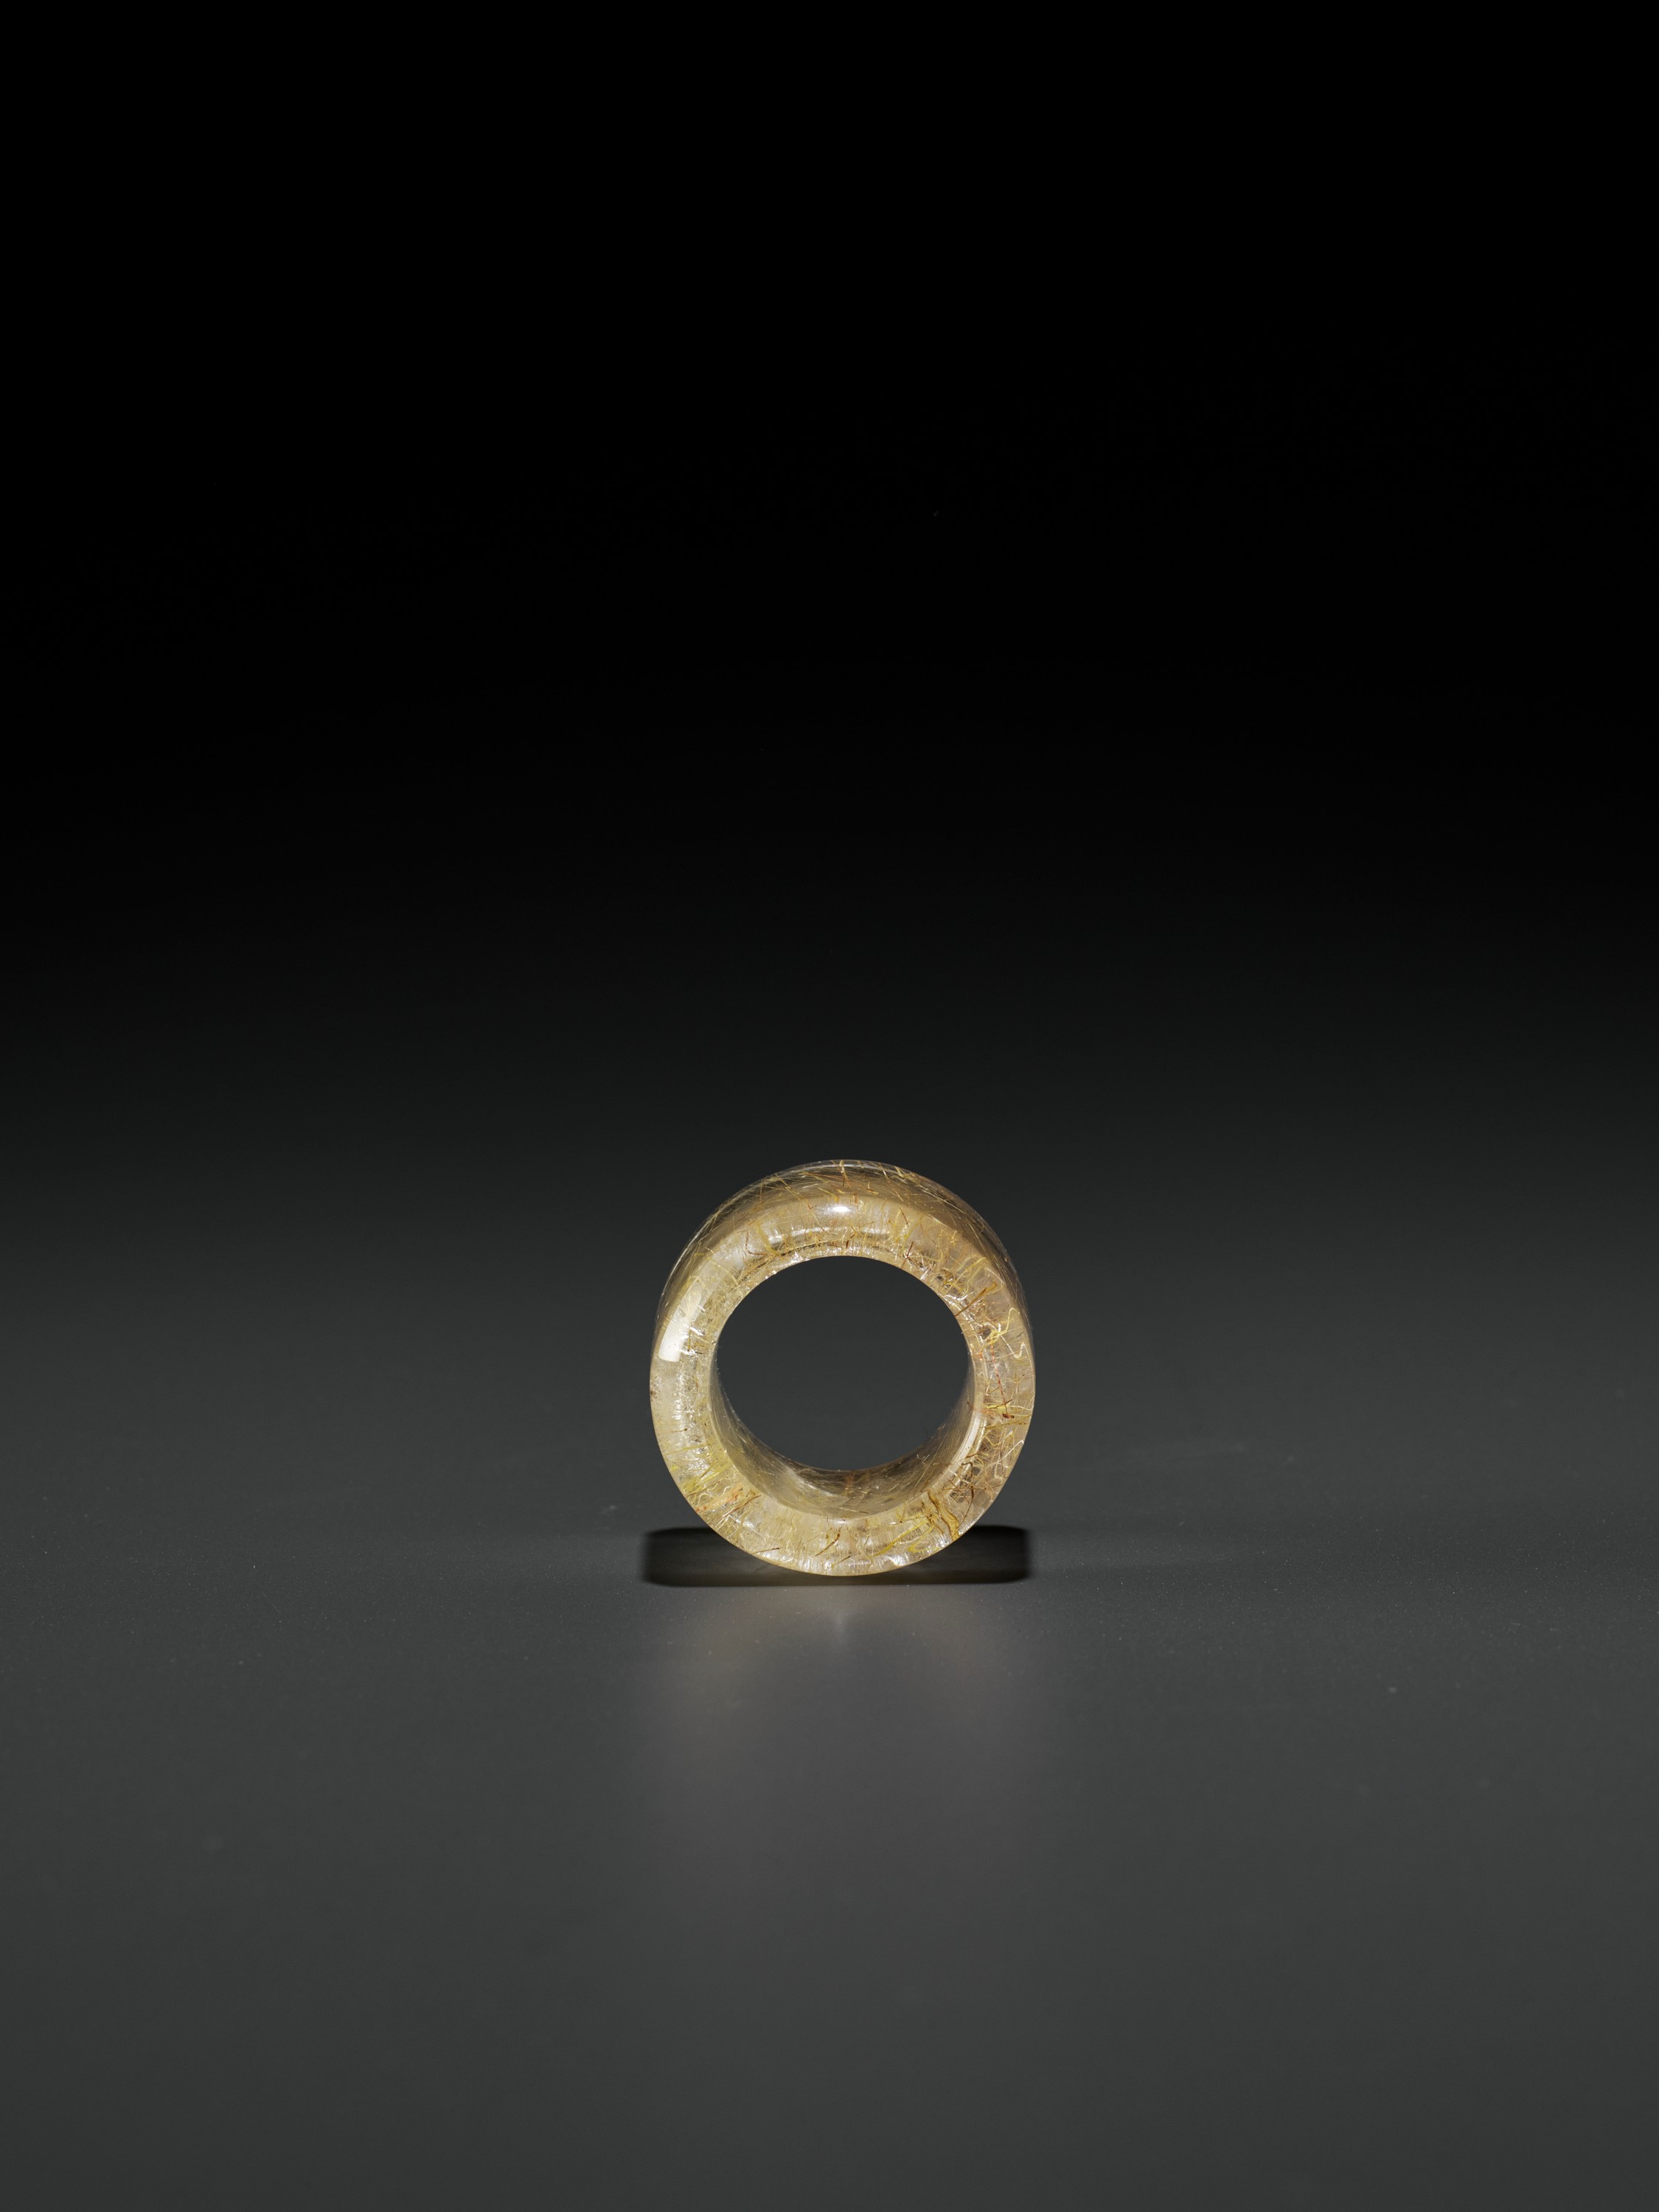 A 'HAIR' CRYSTAL ARCHER'S RING, QING DYNASTY - Image 7 of 9